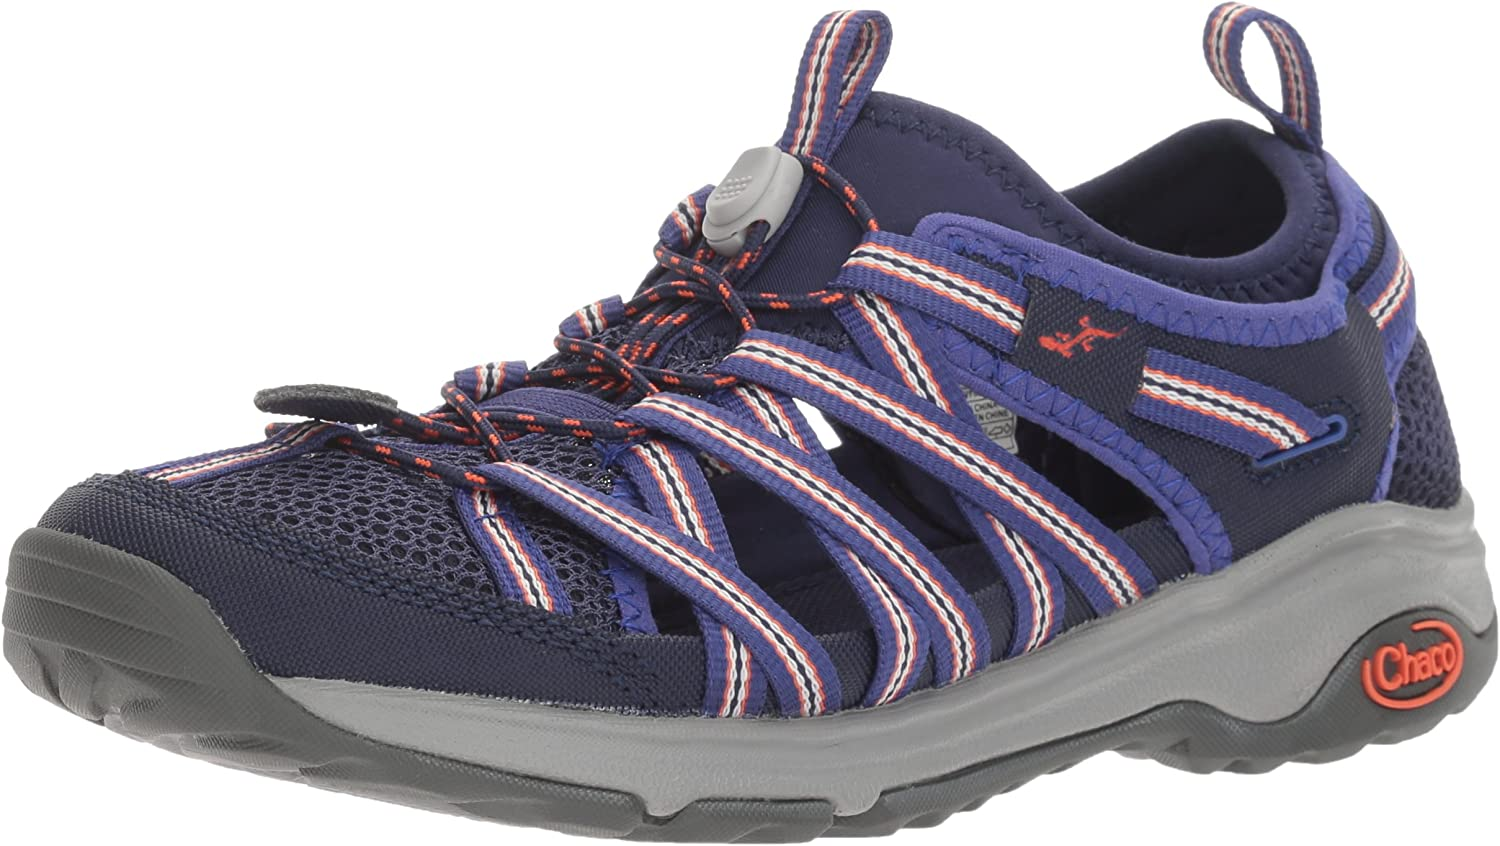 Chaco Women s Outcross Evo 1 Hiking Shoe